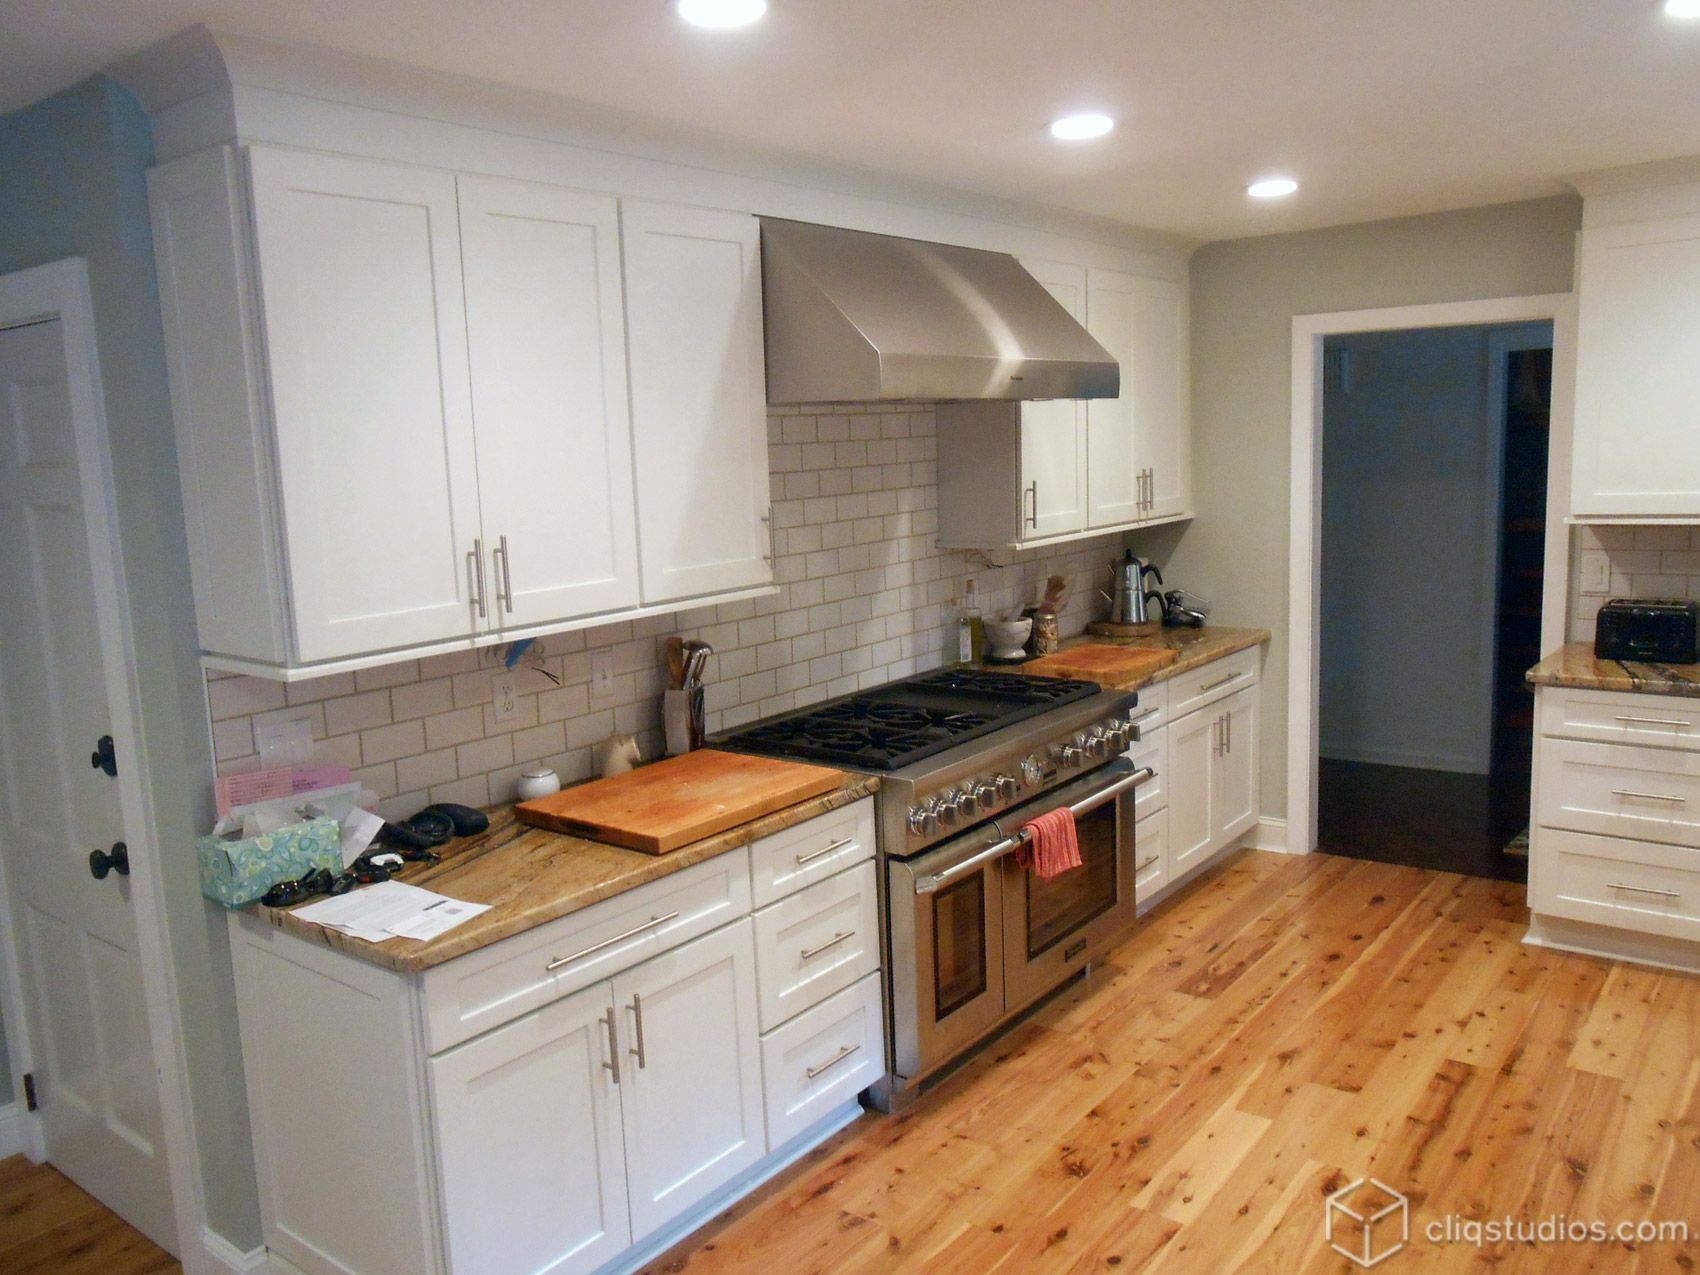 Dayton Painted White Mission Kitchen Cabinets From Cliqstudios Kitchen Cabinet Door Styles Kitchen Remodel Kitchen Remodeling Projects